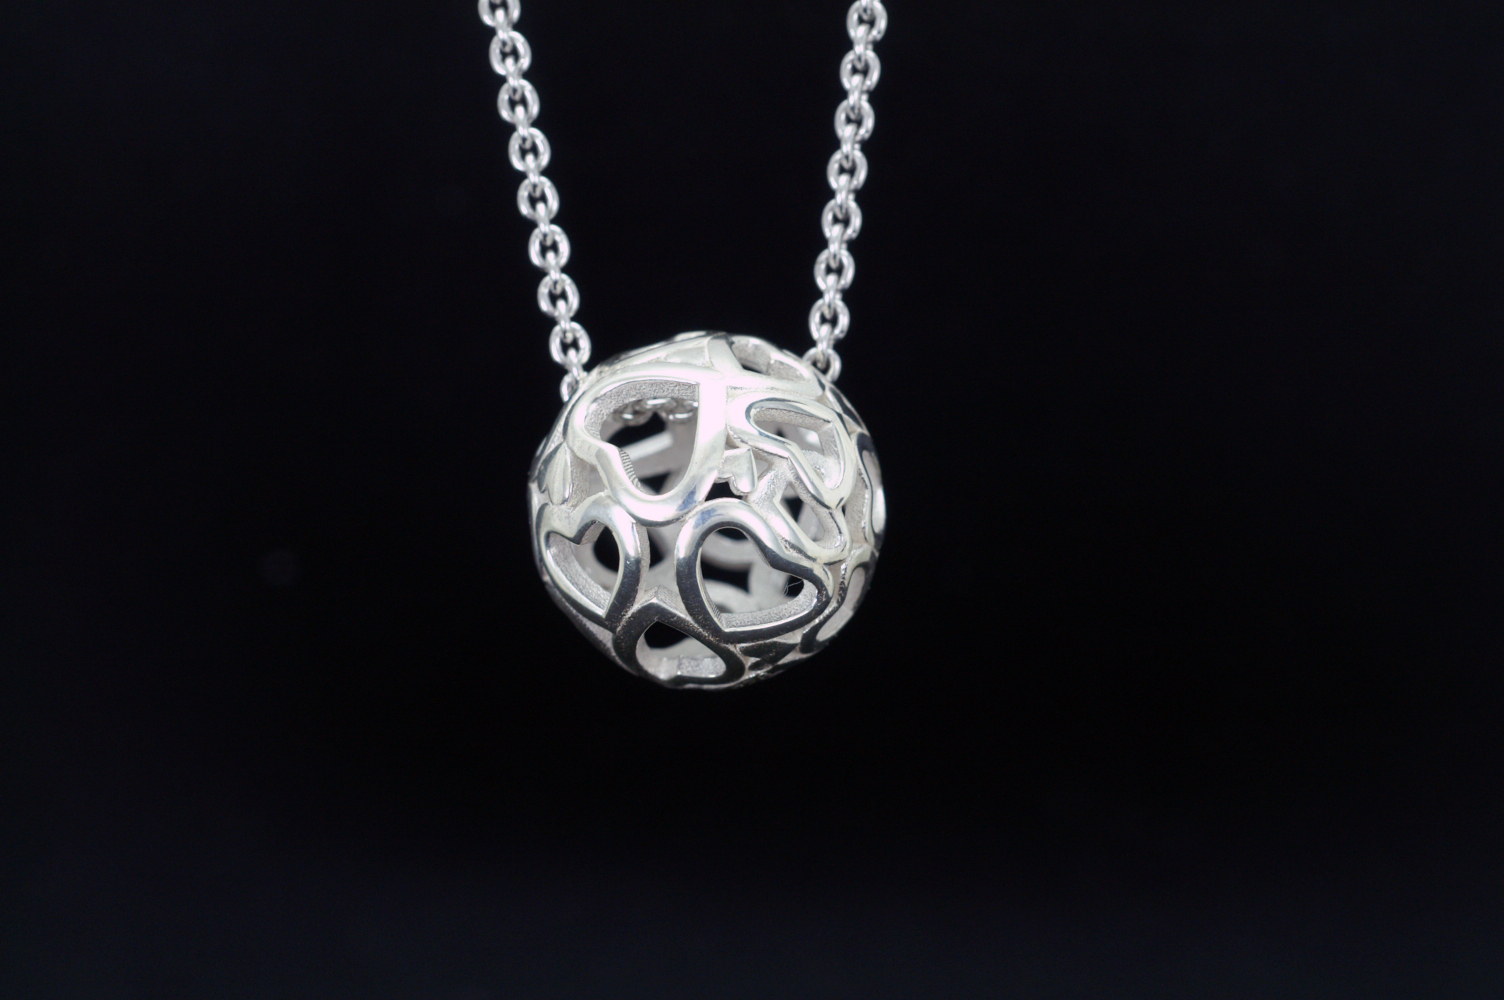 SV925 Heartball 20mm Pendant